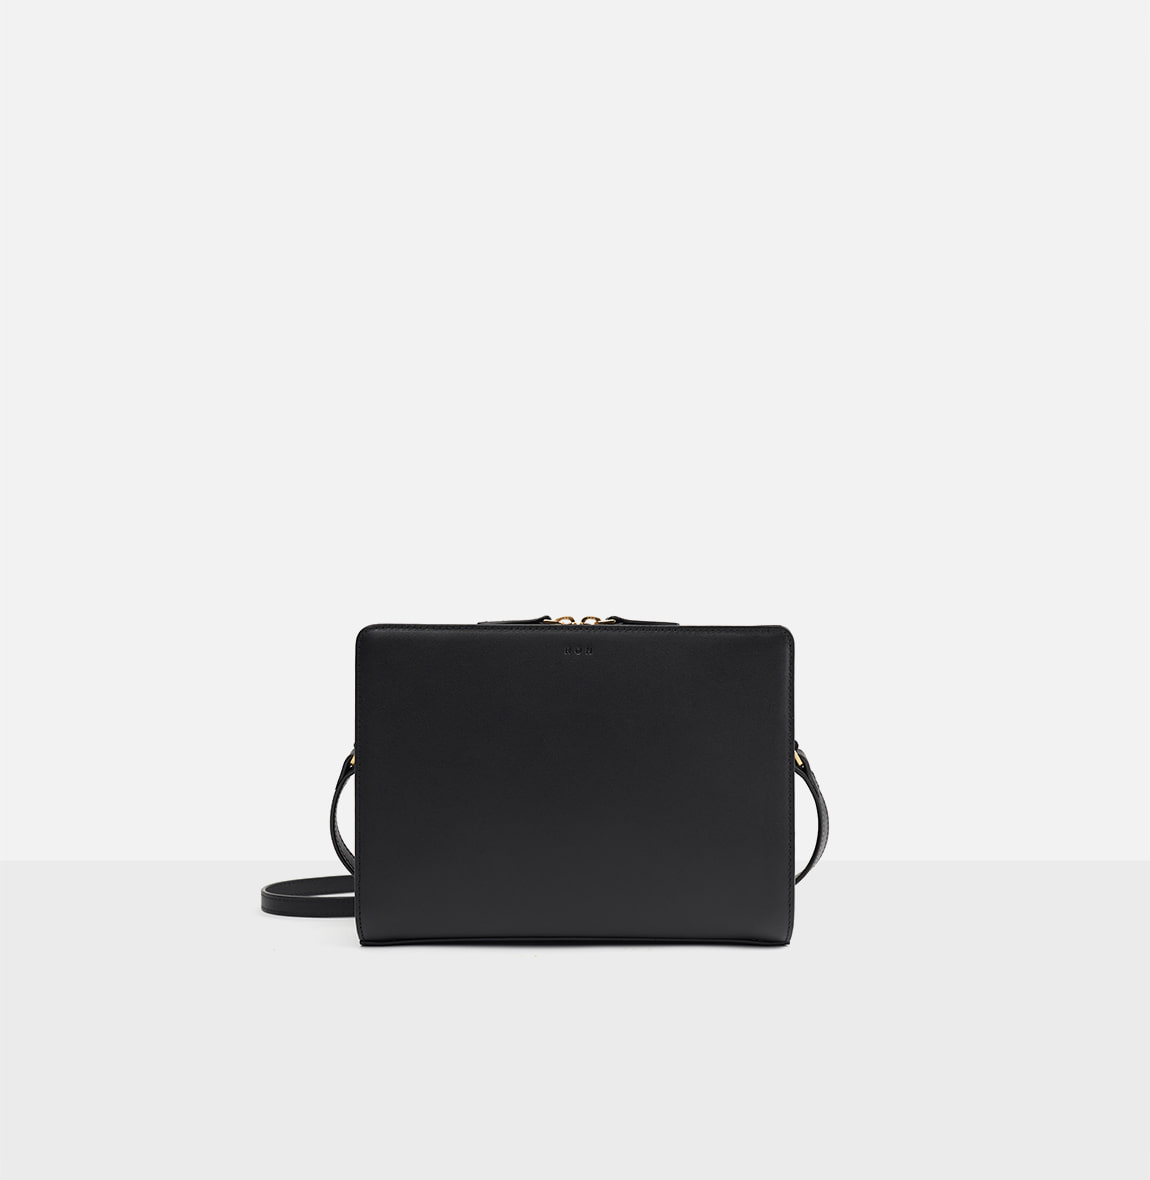 [한정기간10%할인] ROH Squarebag Black